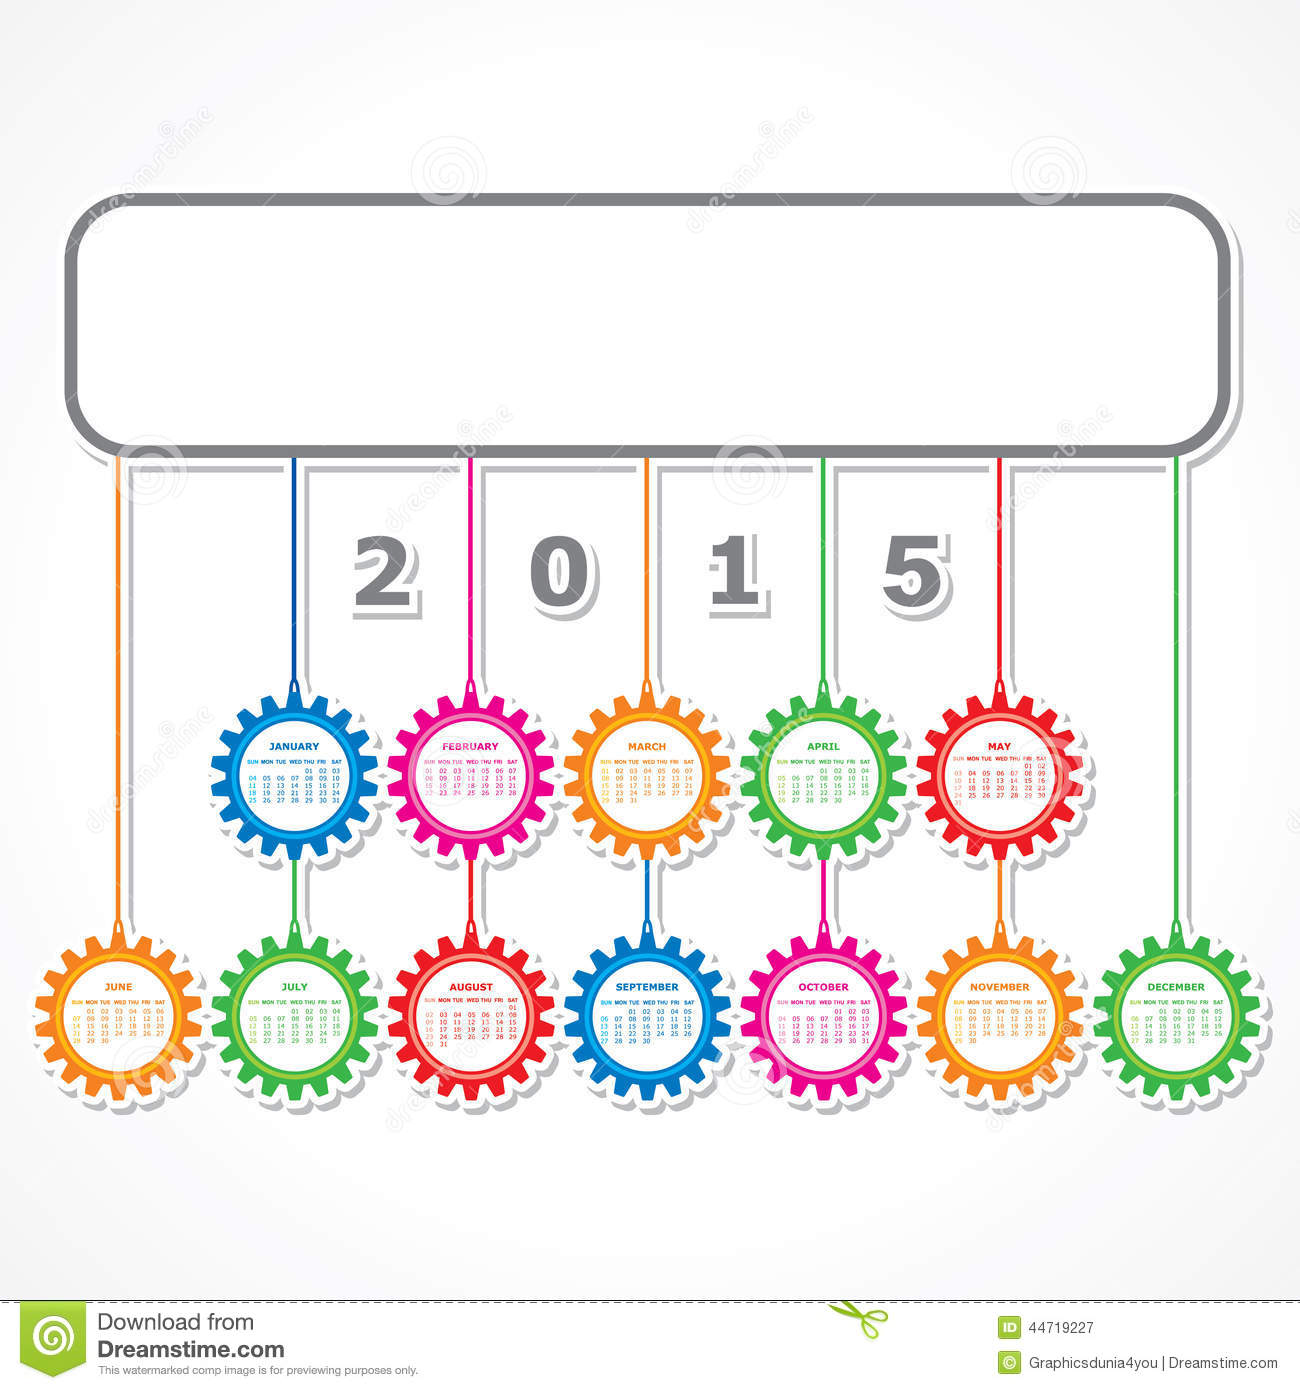 Hanging Calendar Design : Simple calendar design with colorful hanging gears